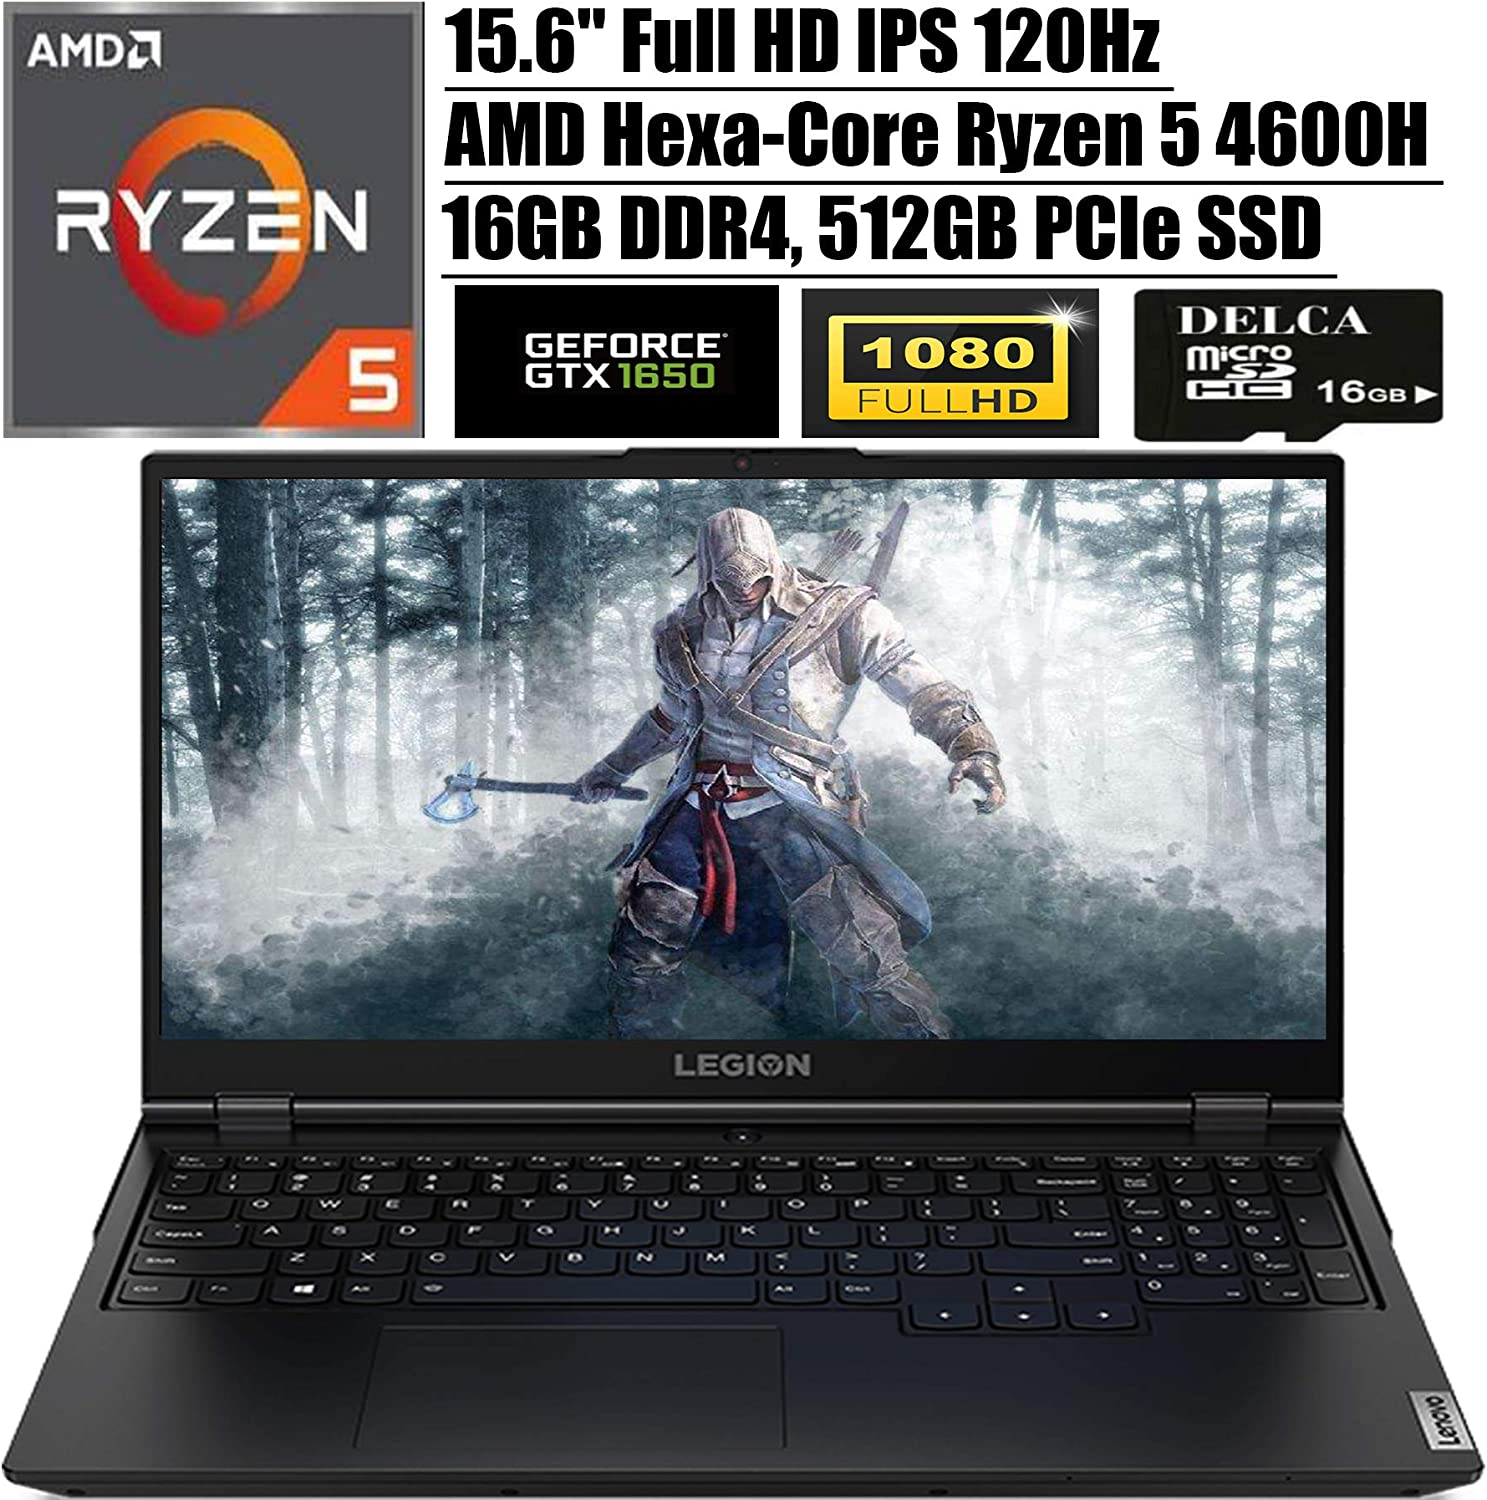 "Lenovo Legion 5 2020 Newest Gaming Laptop I 15.6"" FHD IPS 120Hz I AMD 6-Core Ryzen 5 4600H (> i7-9750H) I 16GB DDR4 512GB PCIe SSD I NVIDIA GTX 1650 Backlit KB USB-C Win 10 + Delca 16GB Micro SD Card"